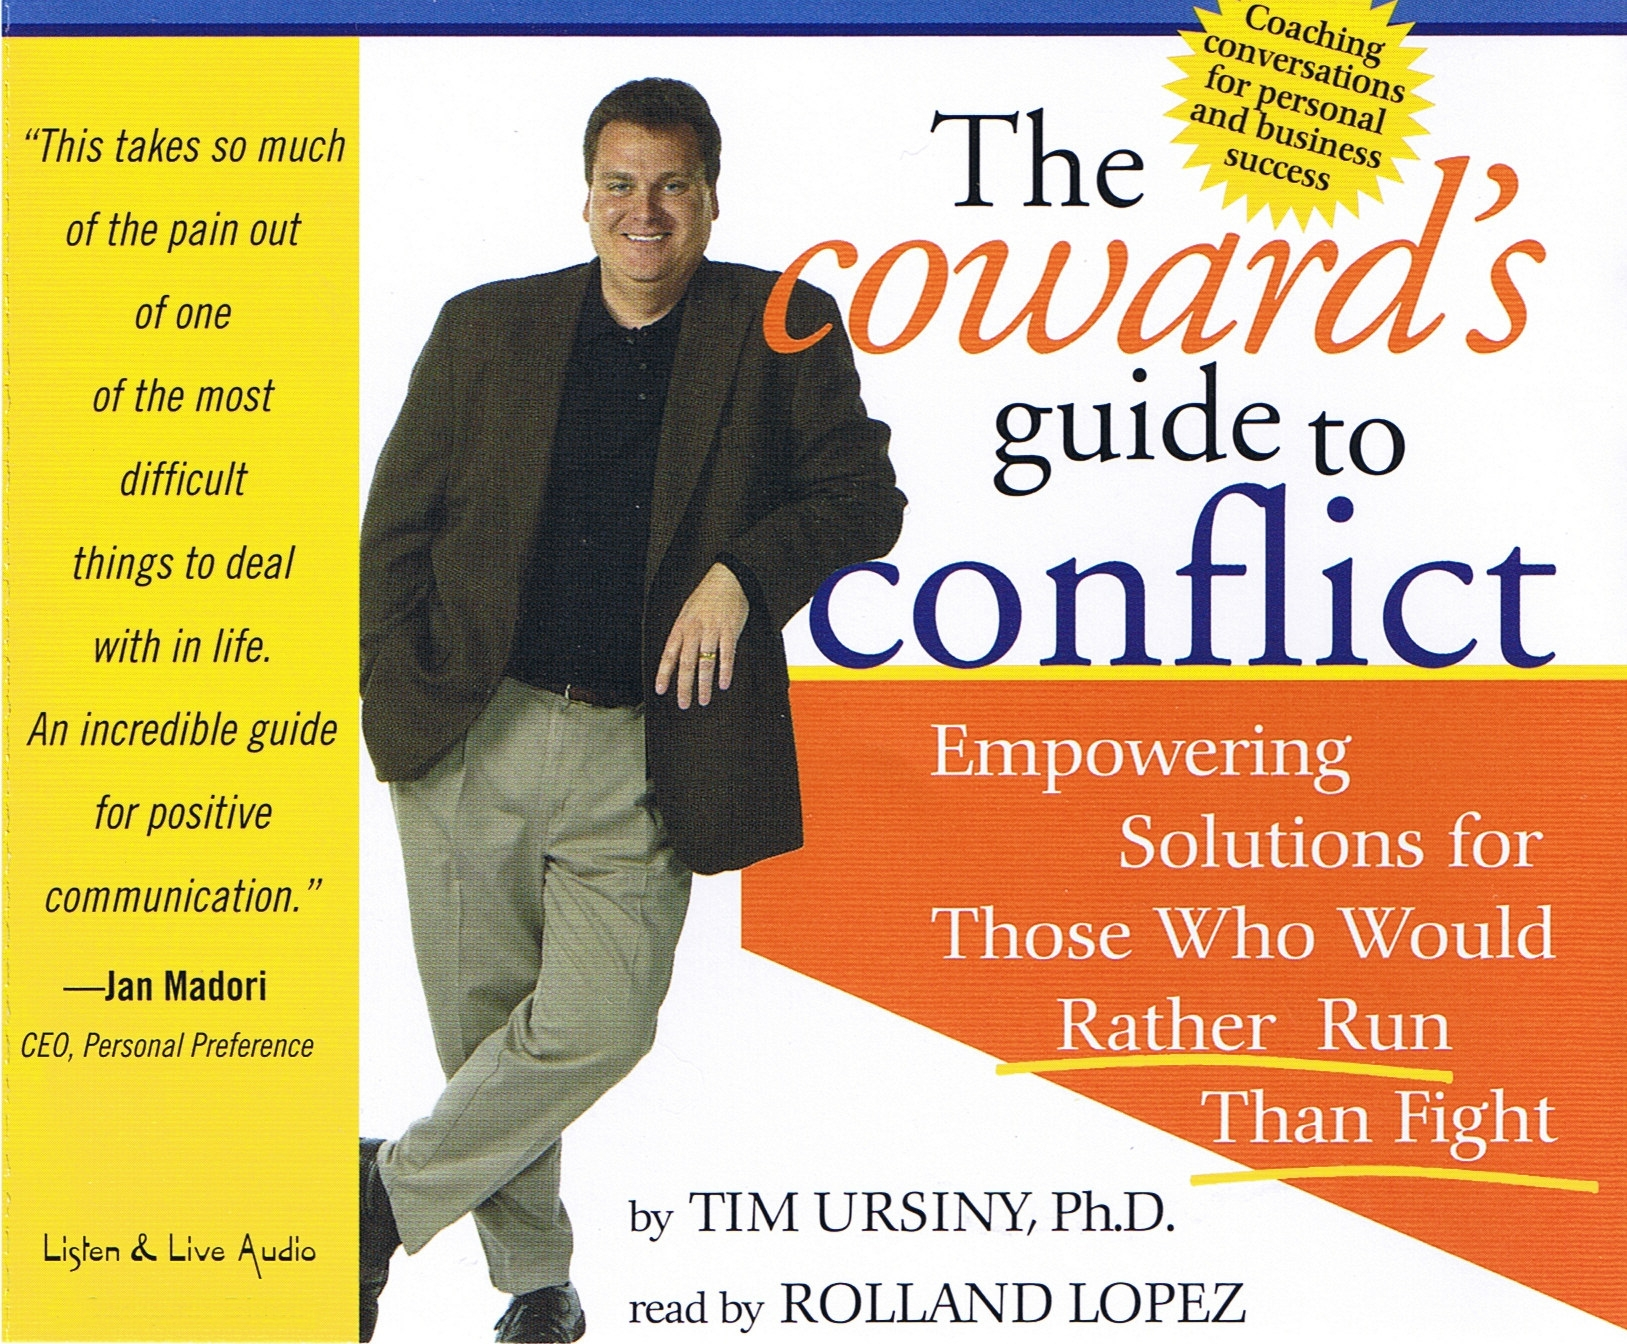 The Coward's Guide To Conflict [3CD]